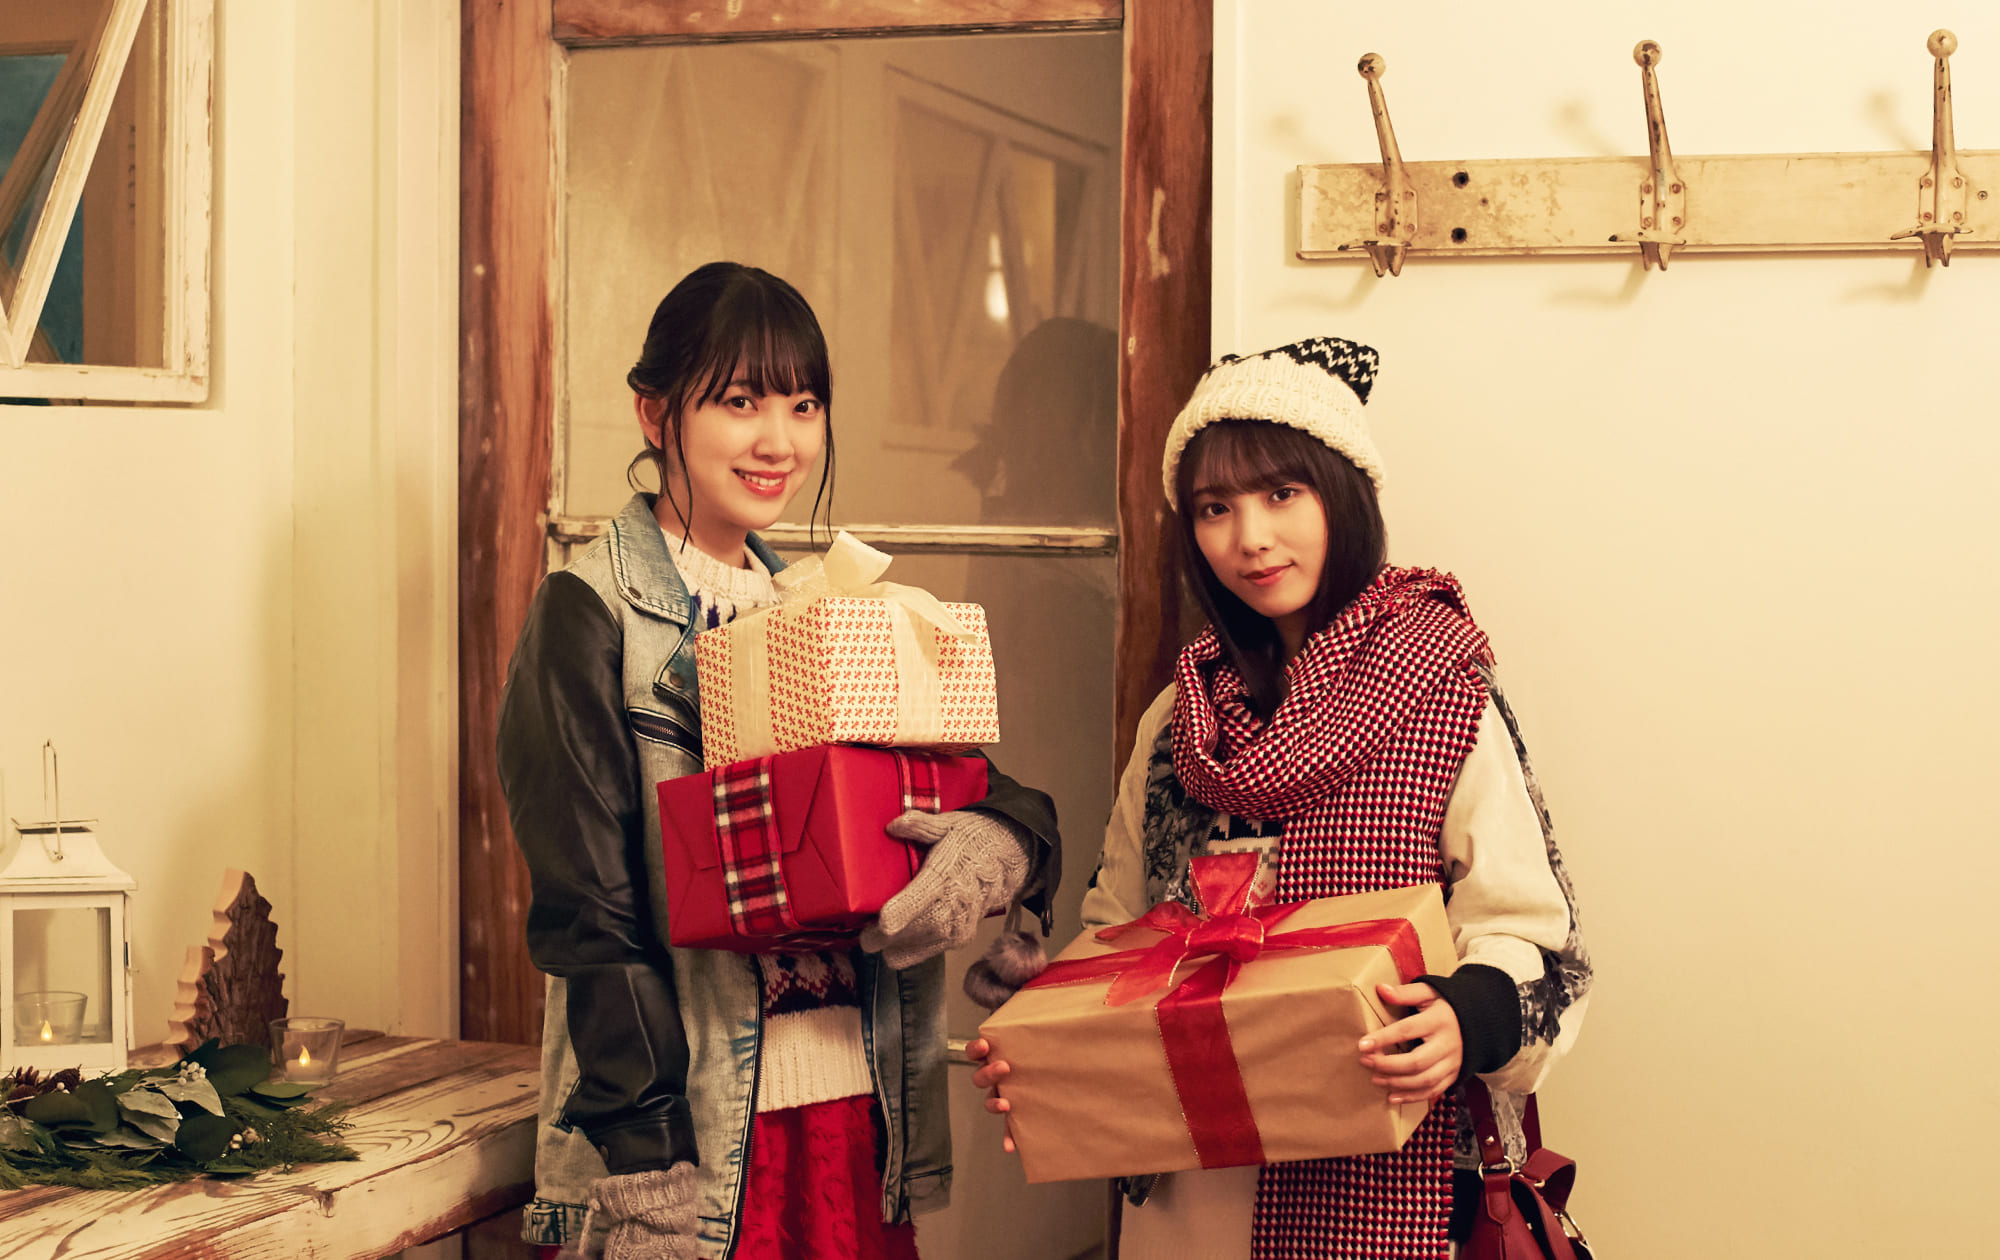 Dog and cat with Nogizaka46 Christmas story released – SI